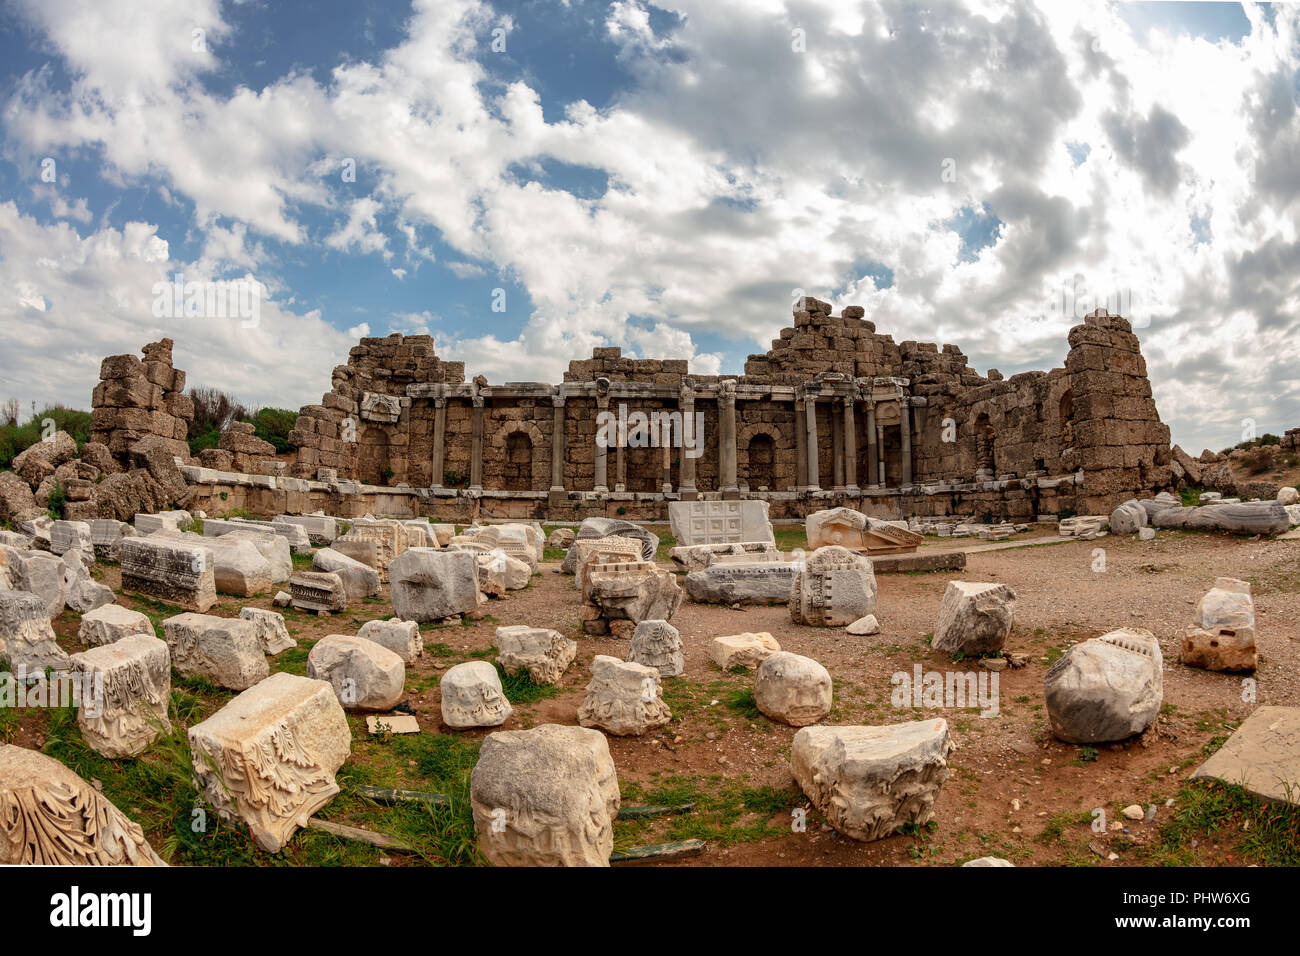 Ancient Side city agora, central hall ruins. Side, Antalya province, Turkey. - Stock Image